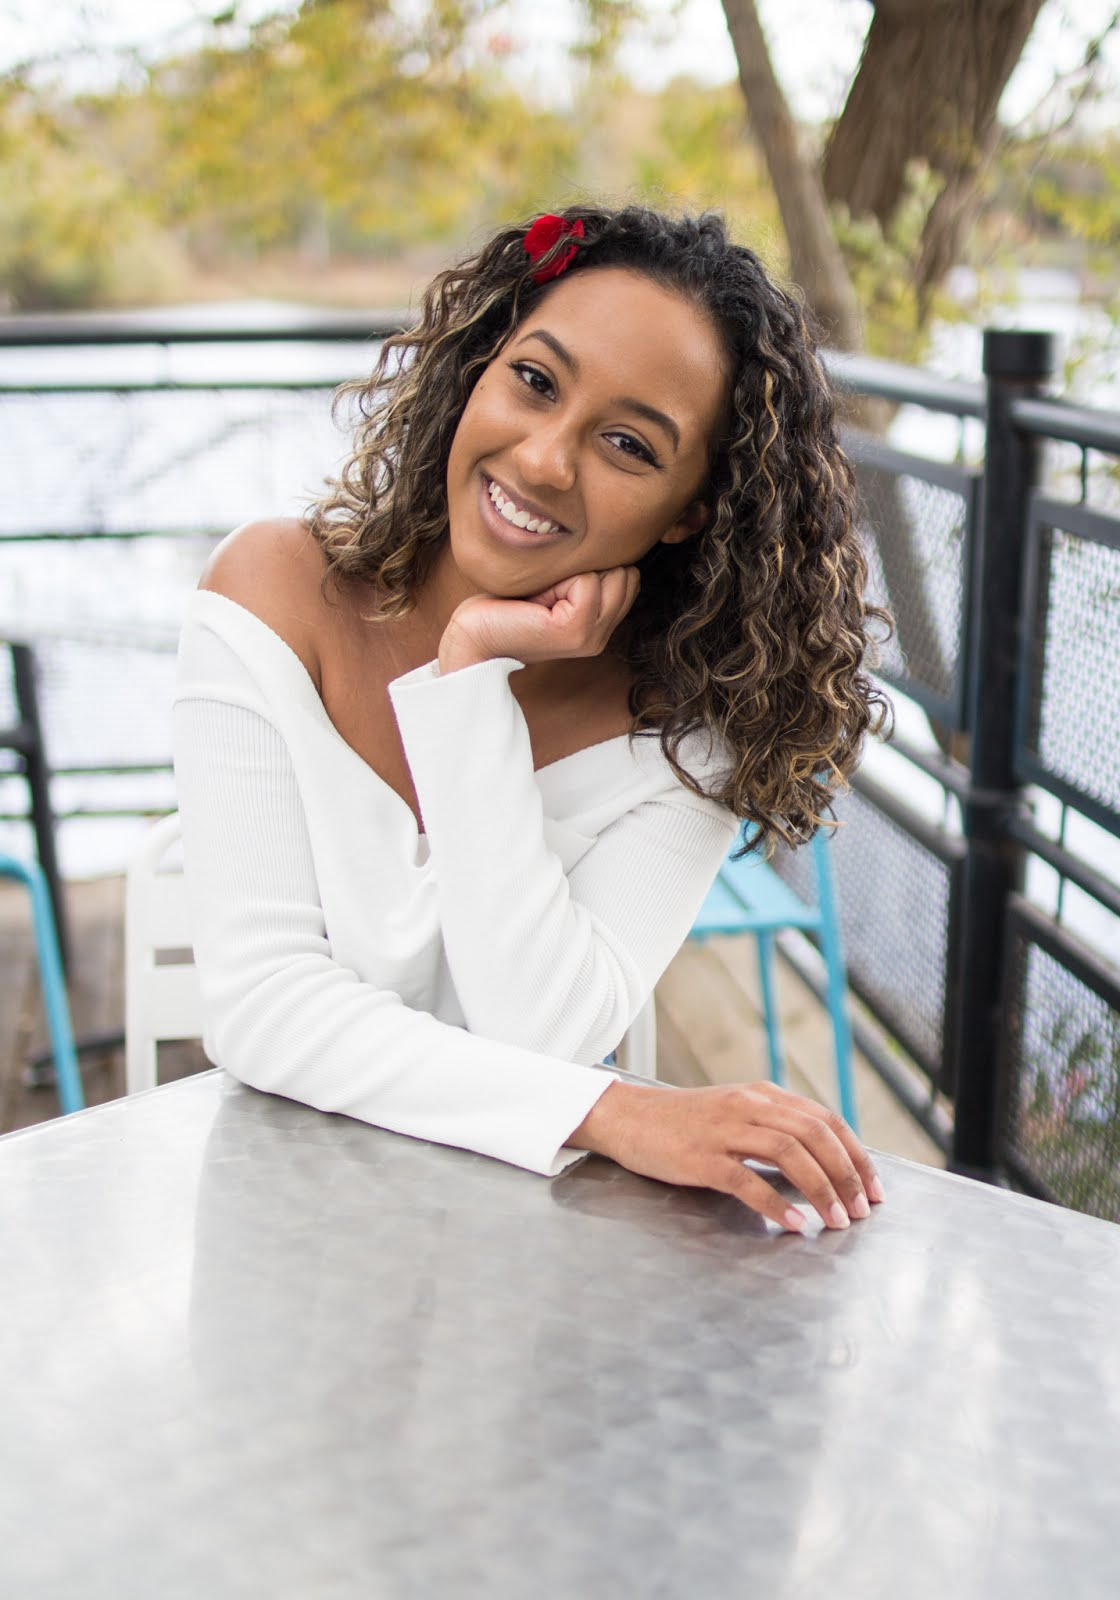 Candicia of HeyitsCandicia is a Canadian curly hair and beauty influencer & blogger. Also the creator of the Toronto Curly Girl Meetup.